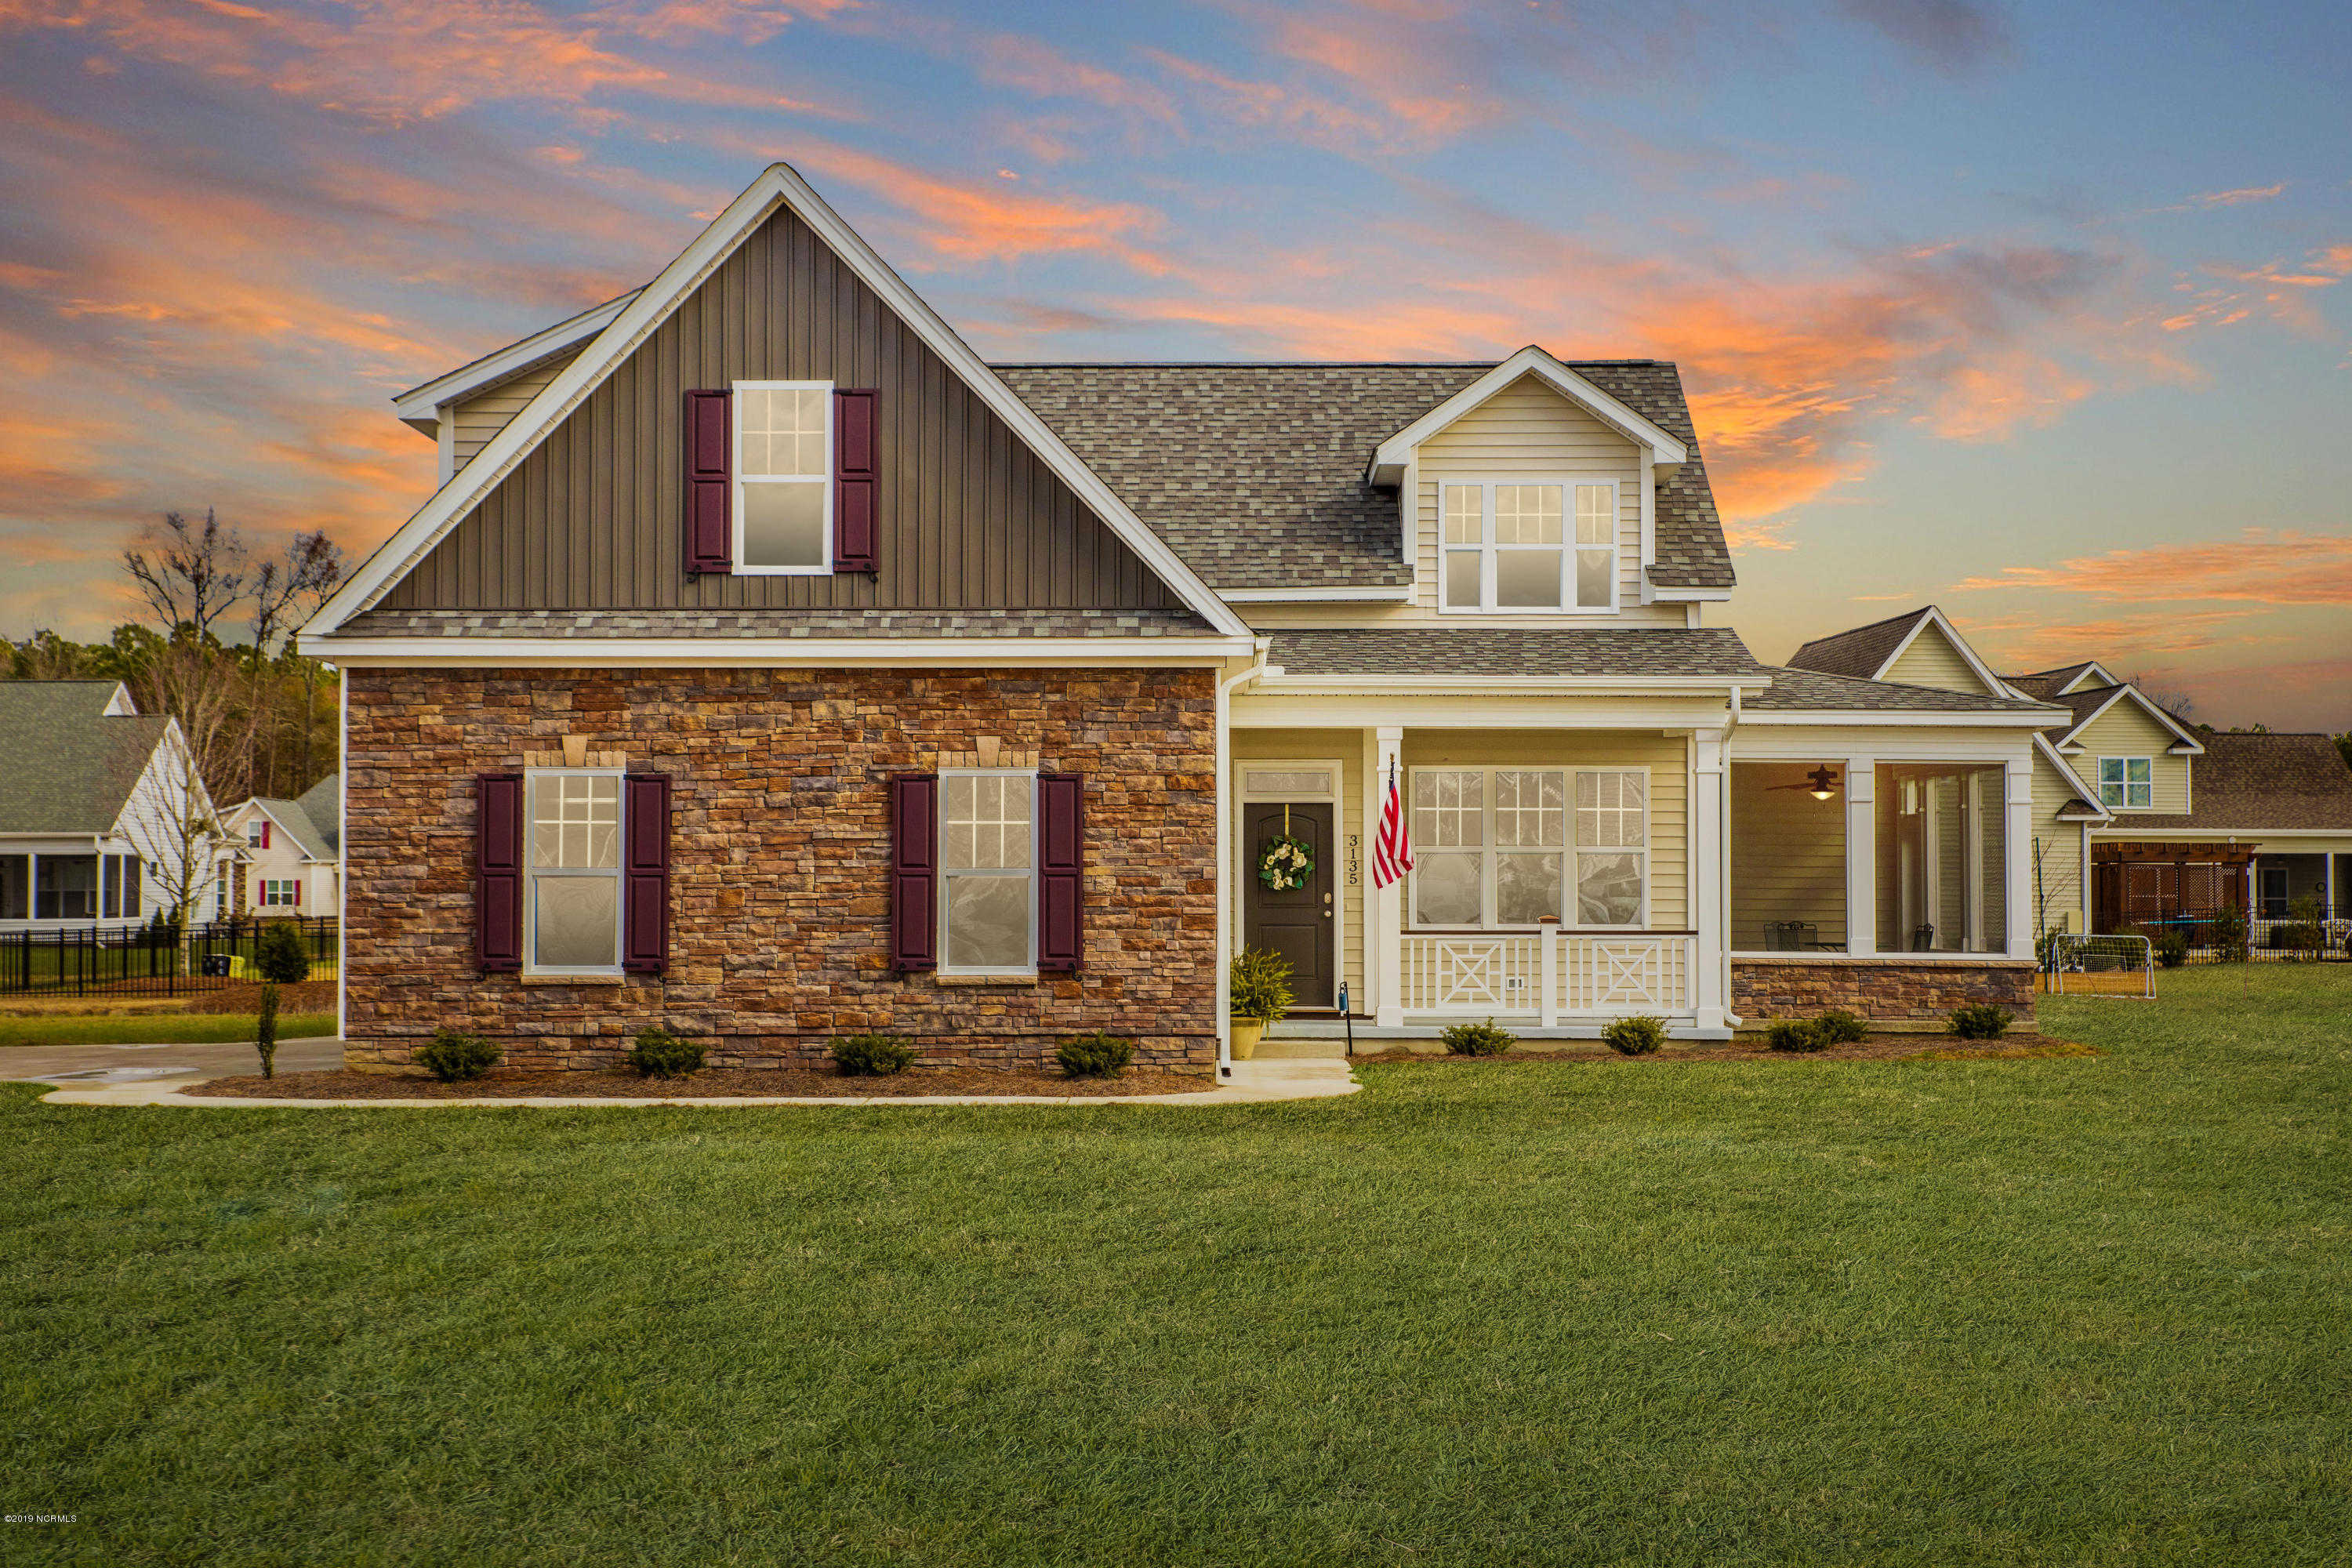 Remarkable Homes For Sale In Greenville Nc Angela Drum Team Realtors Home Interior And Landscaping Spoatsignezvosmurscom